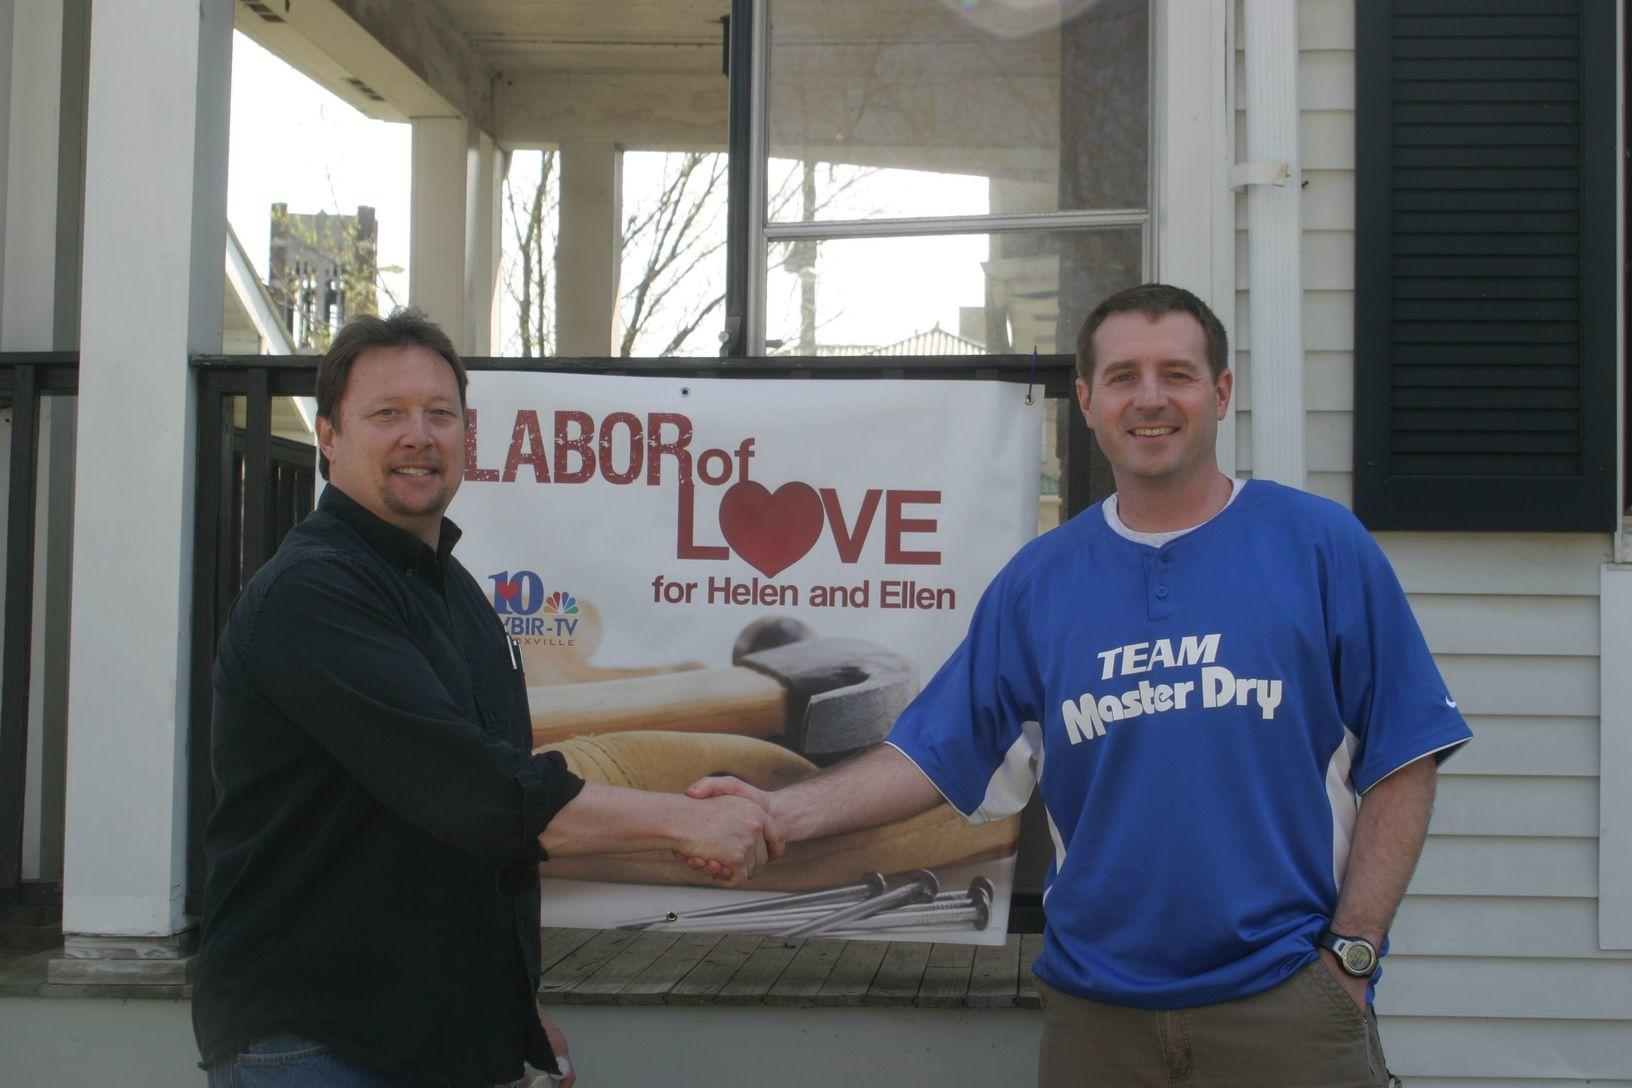 Master Dry Helps Labor of Love Campaign